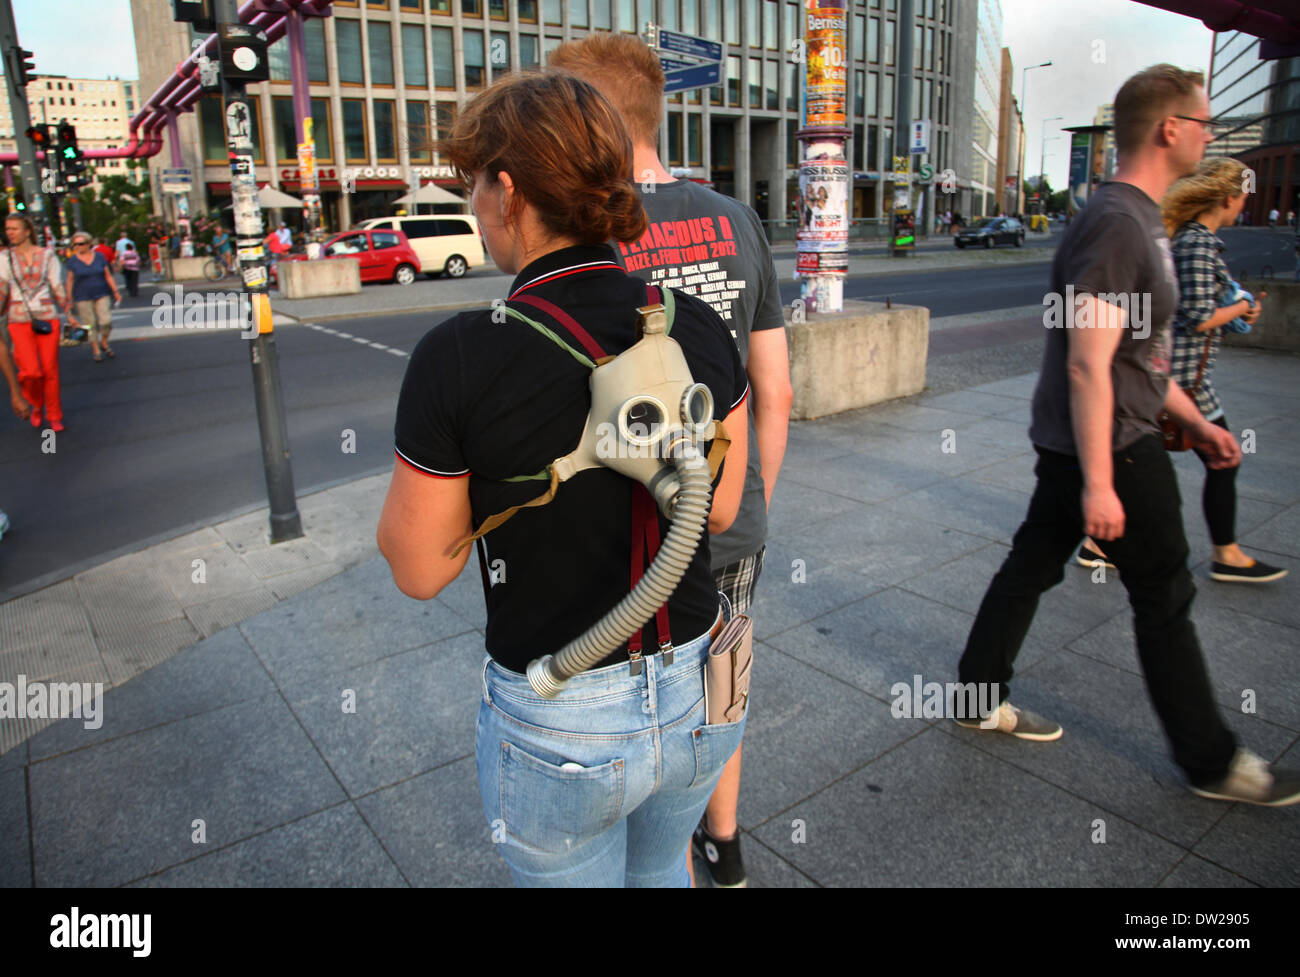 A German tourist carries a gas mask at Potsdamer Platz in Berlin, August 08, 2013. More and more tourists come to the German capital every year. The photo is part of a series on tourism in Berlin. Photo. Wolfram Steinberg dpa - Stock Image